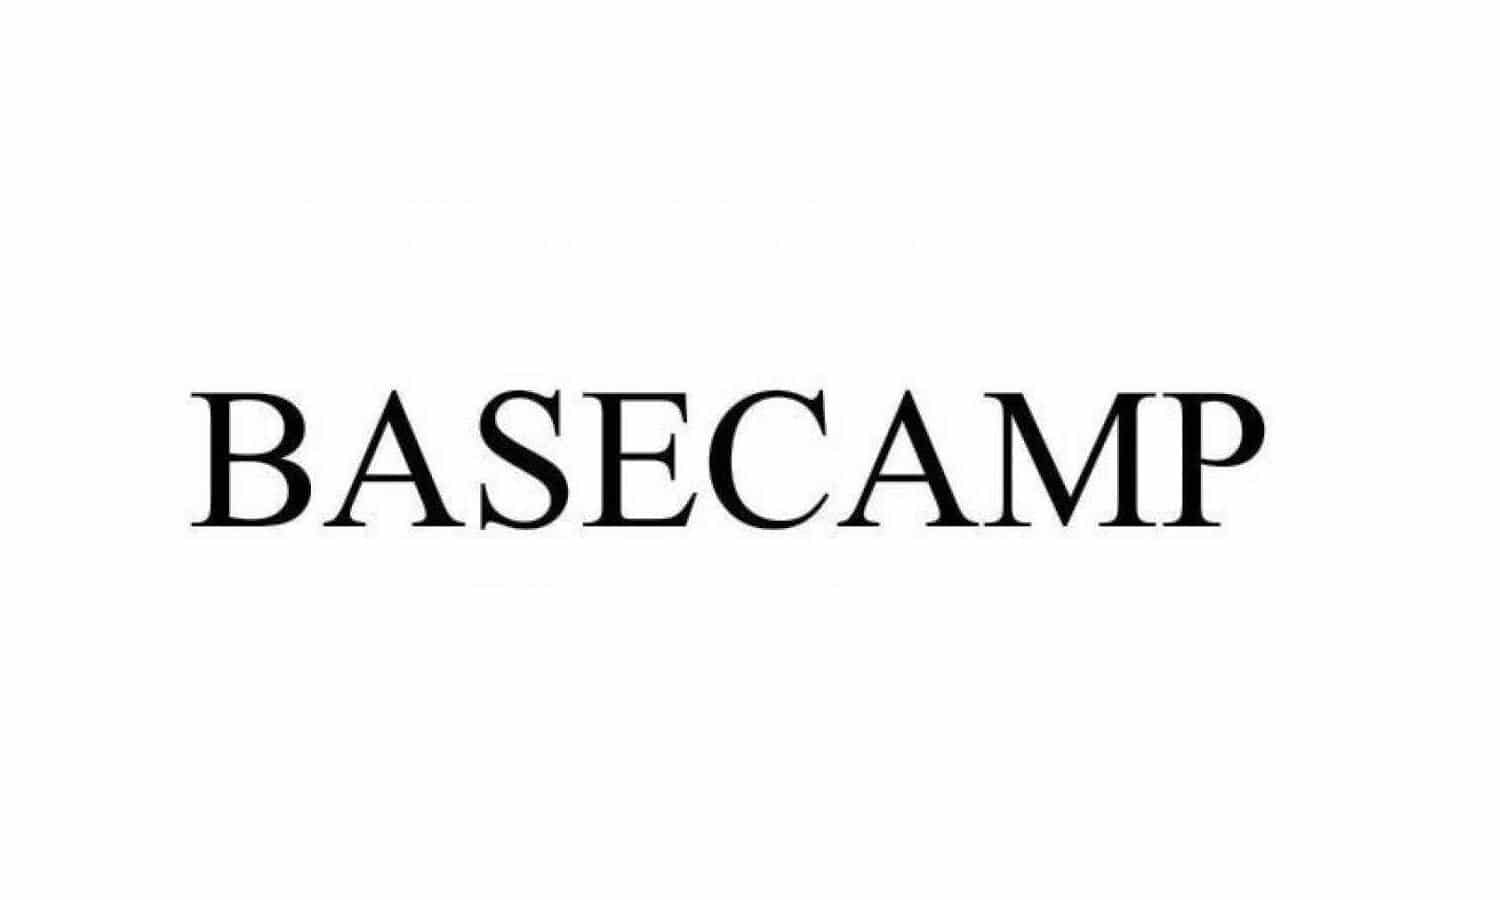 Volkswagen Basecamp trade mark United States Patent And Trademark Office logo